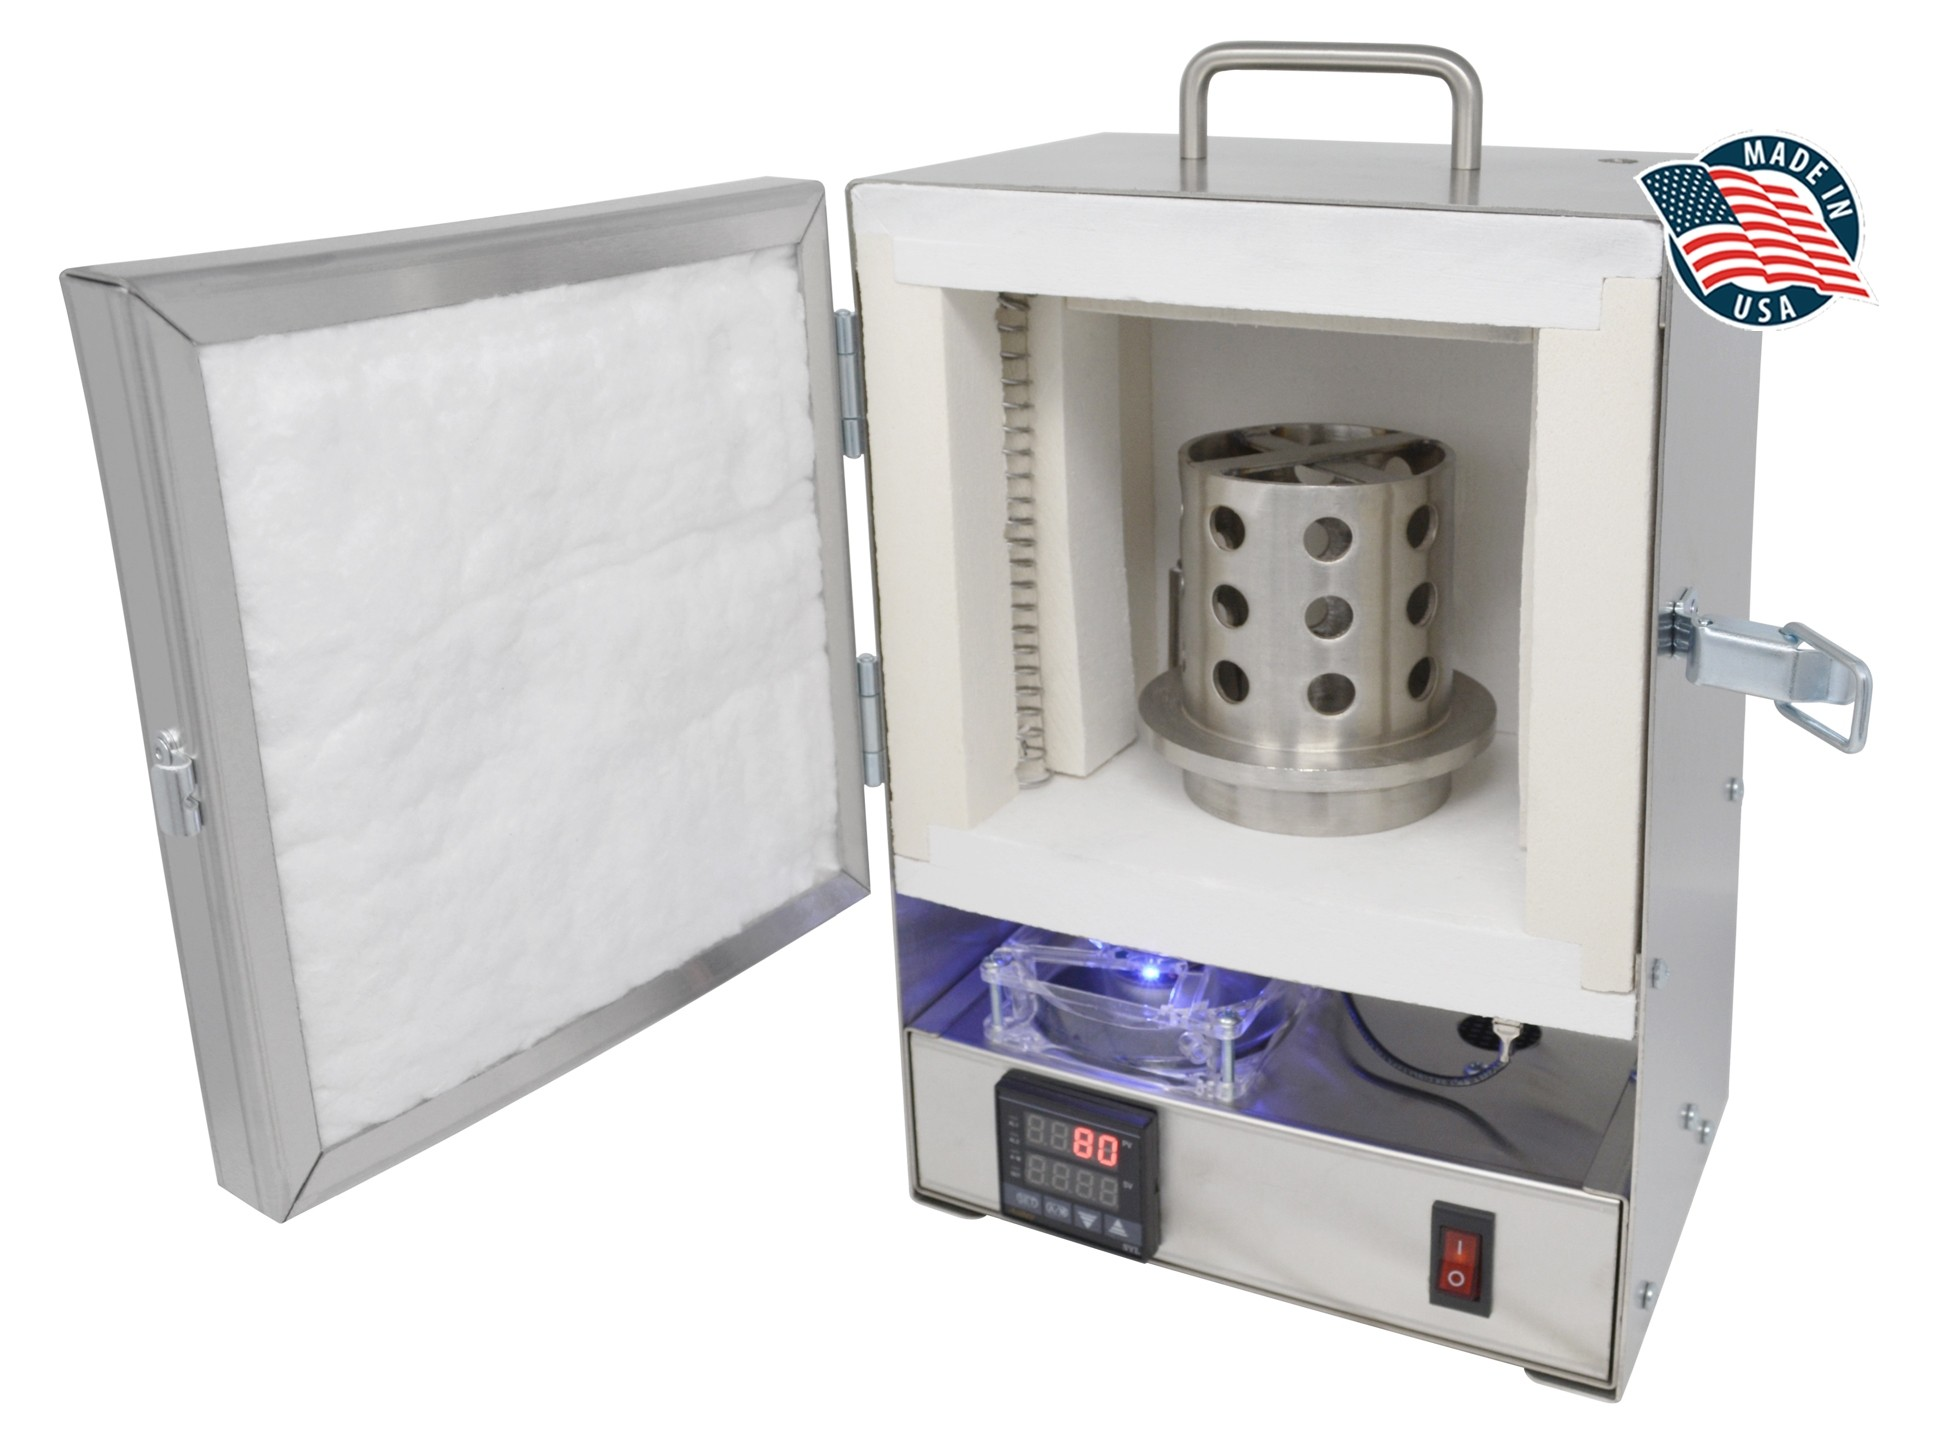 9ad0274b14902 PROGRAMMABLE TableTop Hi-Temp 2200°F Electric Burnout Oven Kiln for 3D  PLA/Resin, and Carvable Wax , FUR-0156 | PMC Supplies